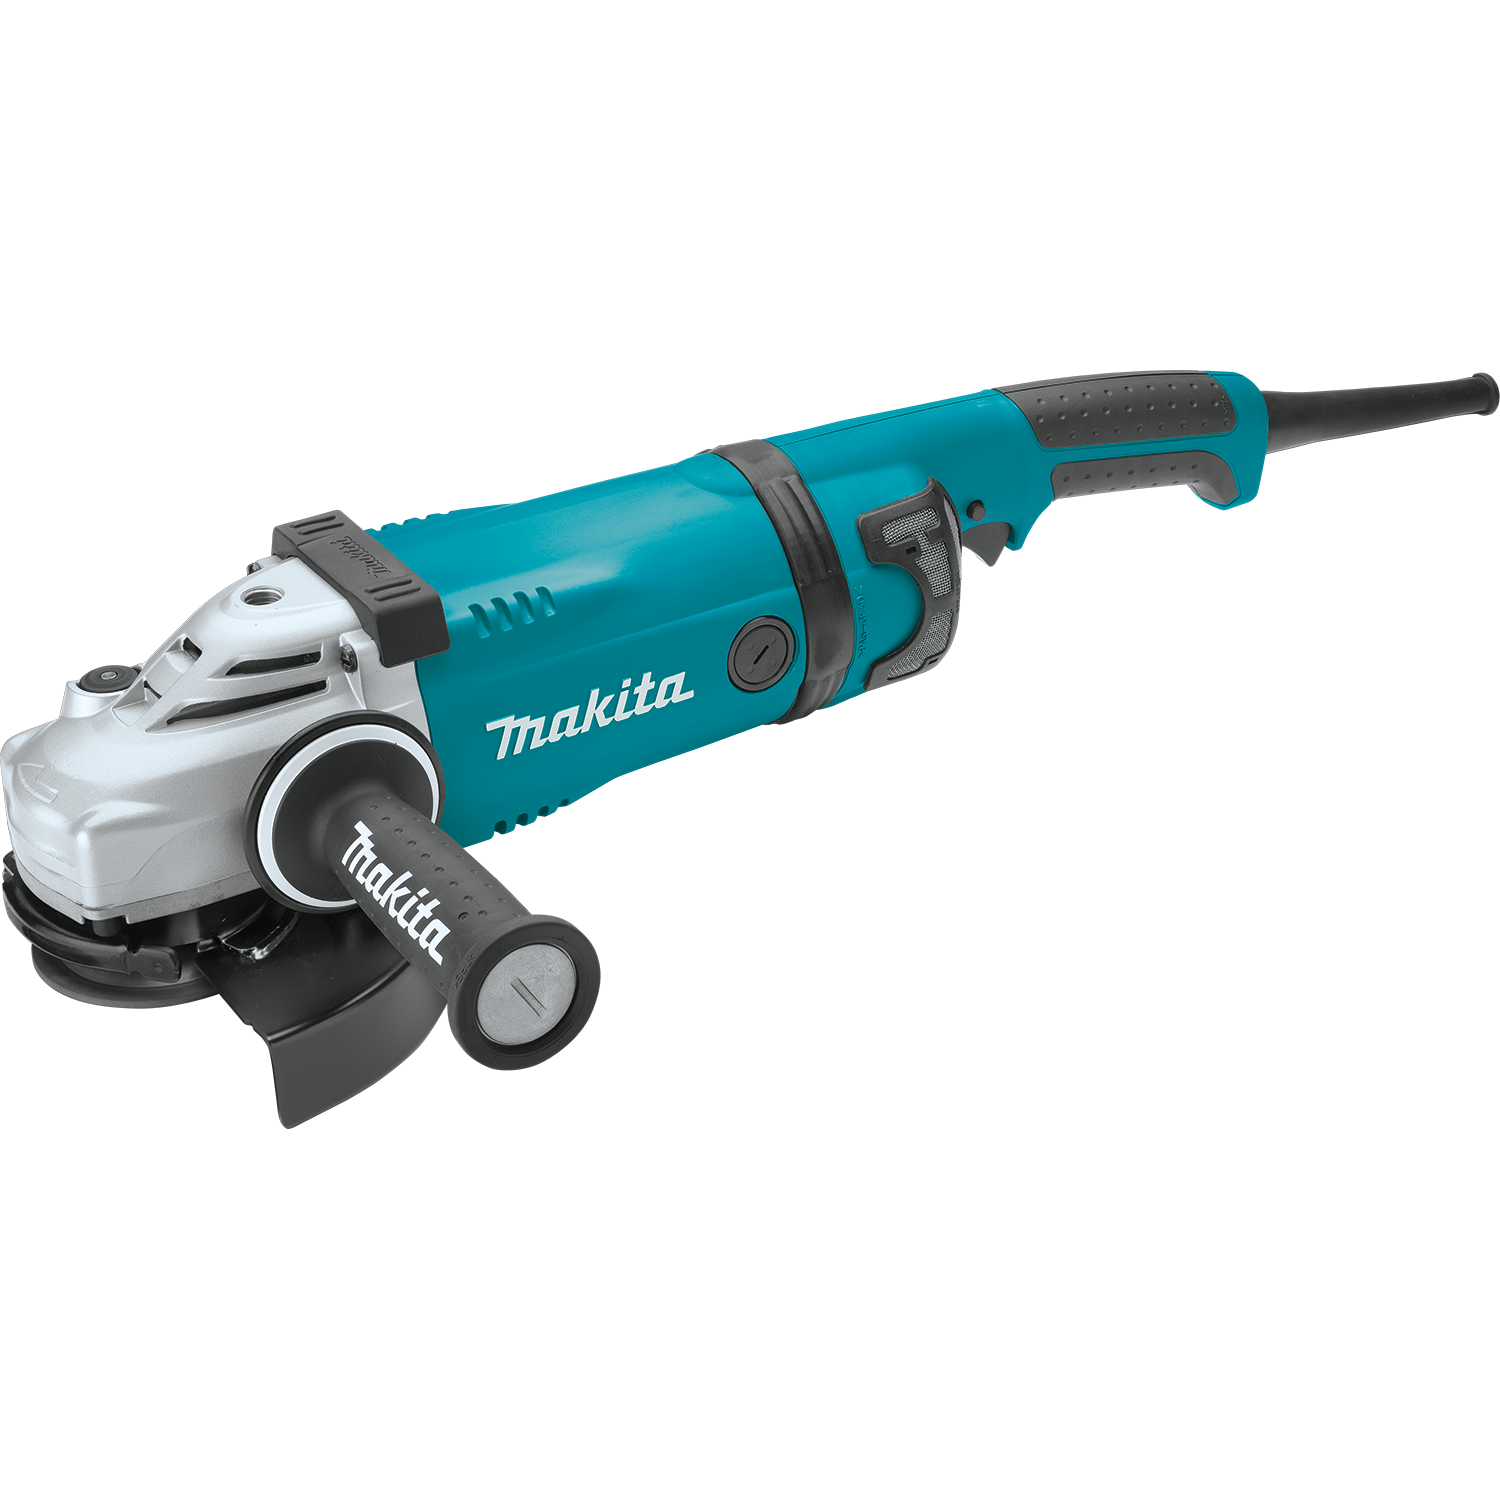 Makita USA - Product Details -GA9031Y on